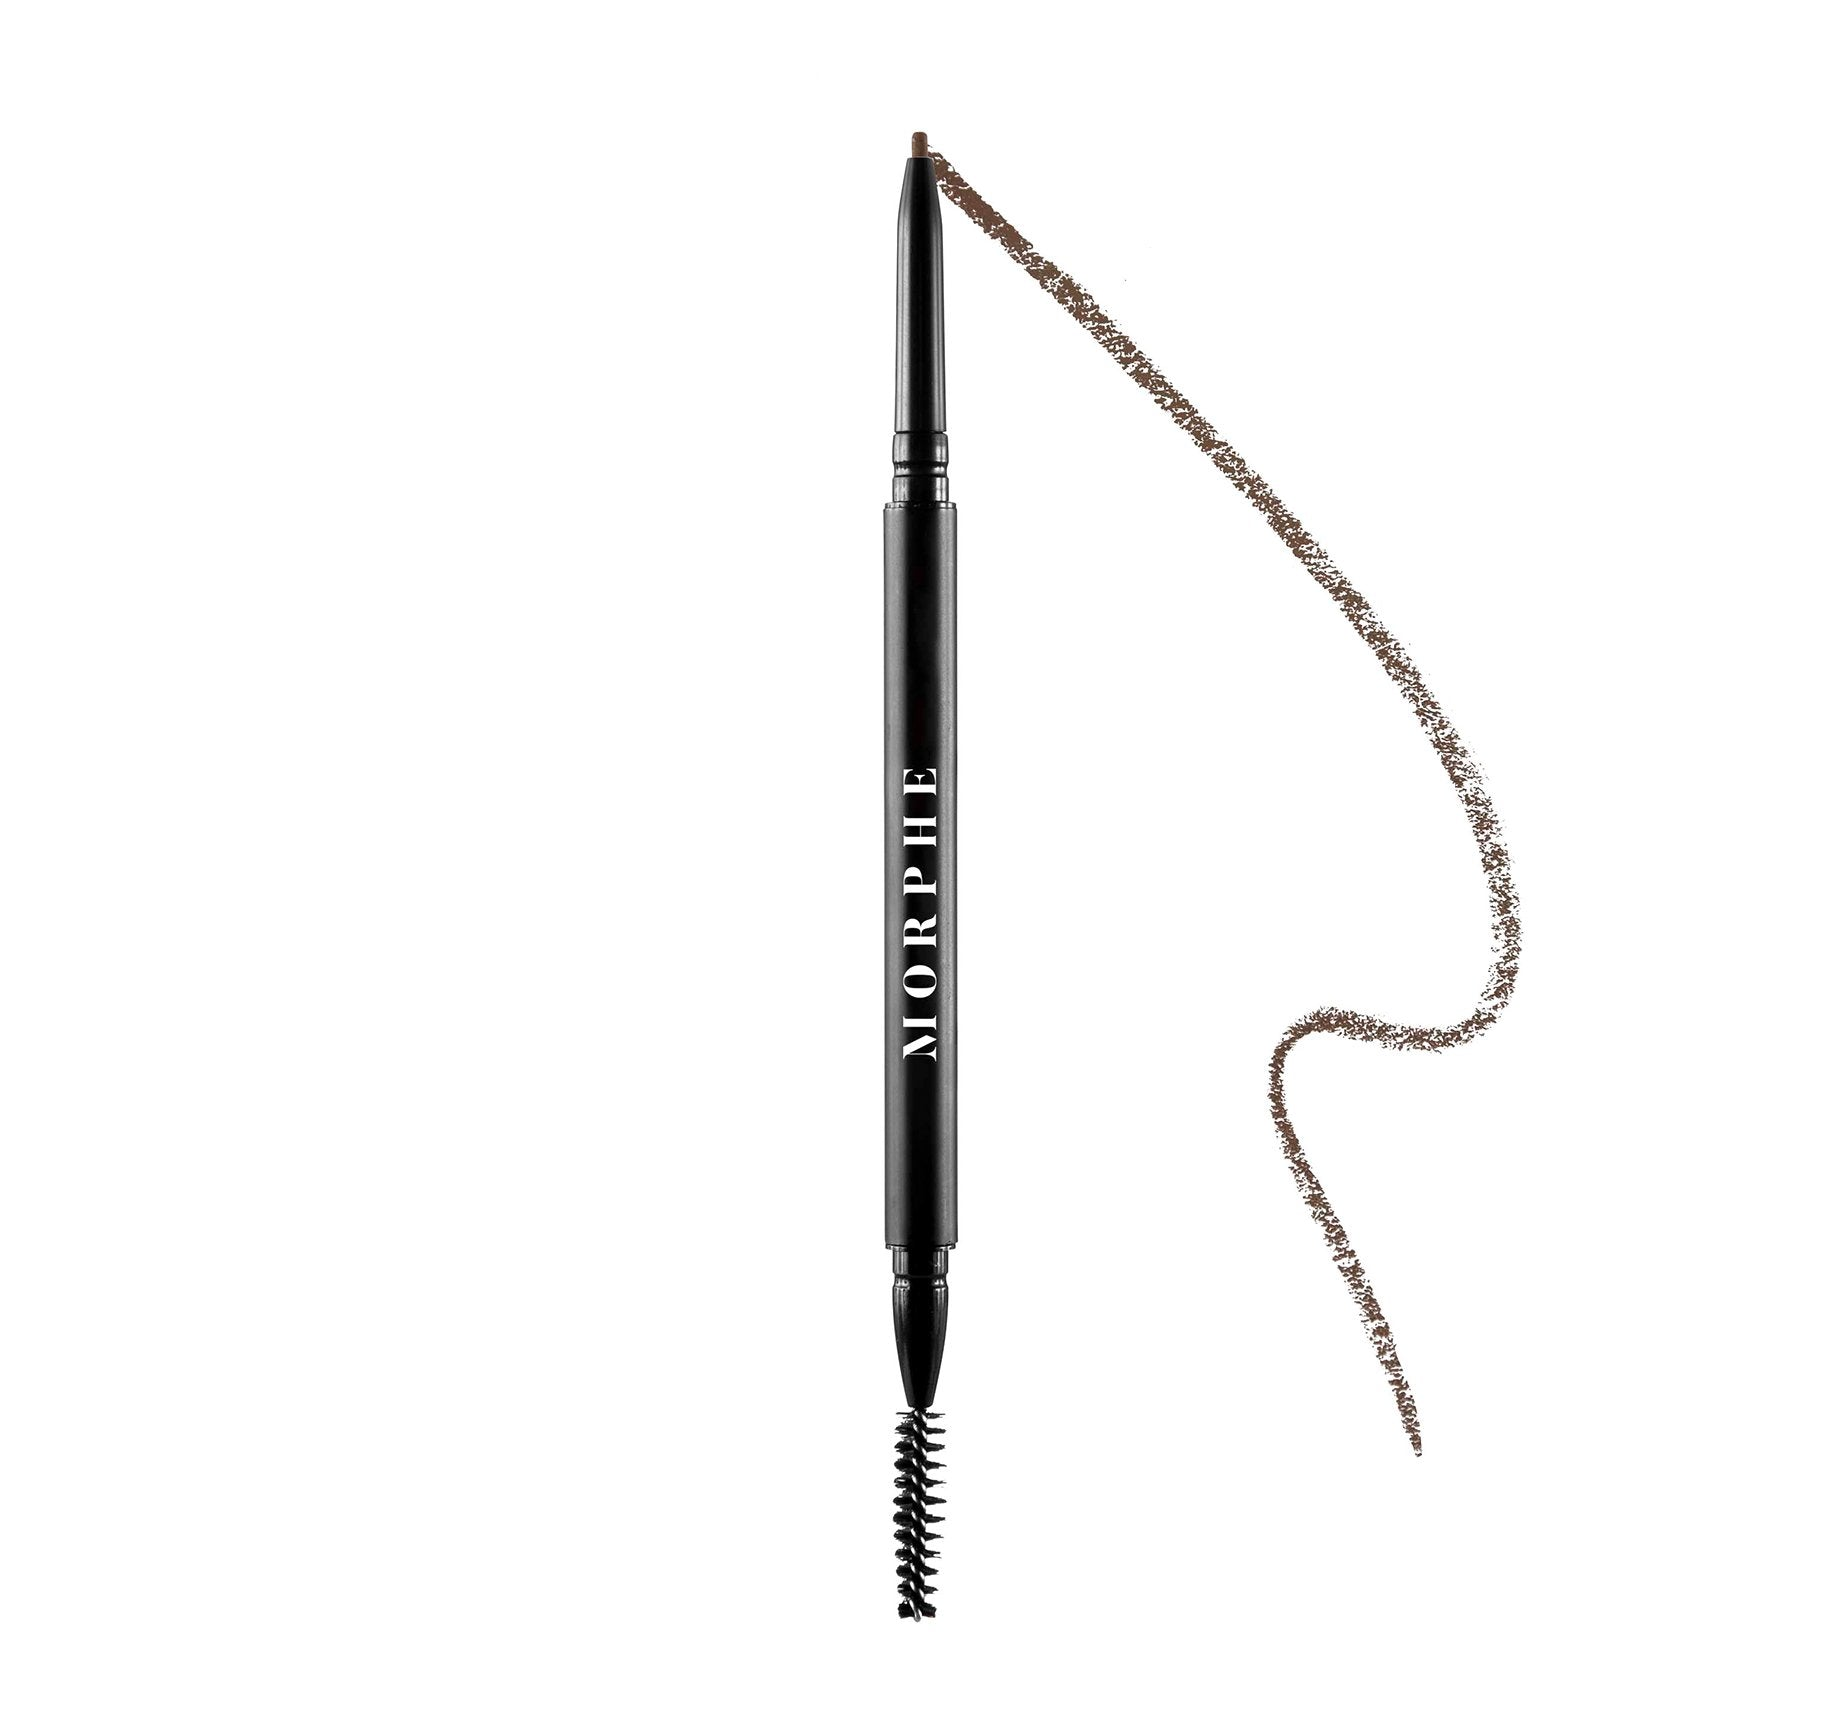 MICRO BROW PENCIL - LATTE, view larger image